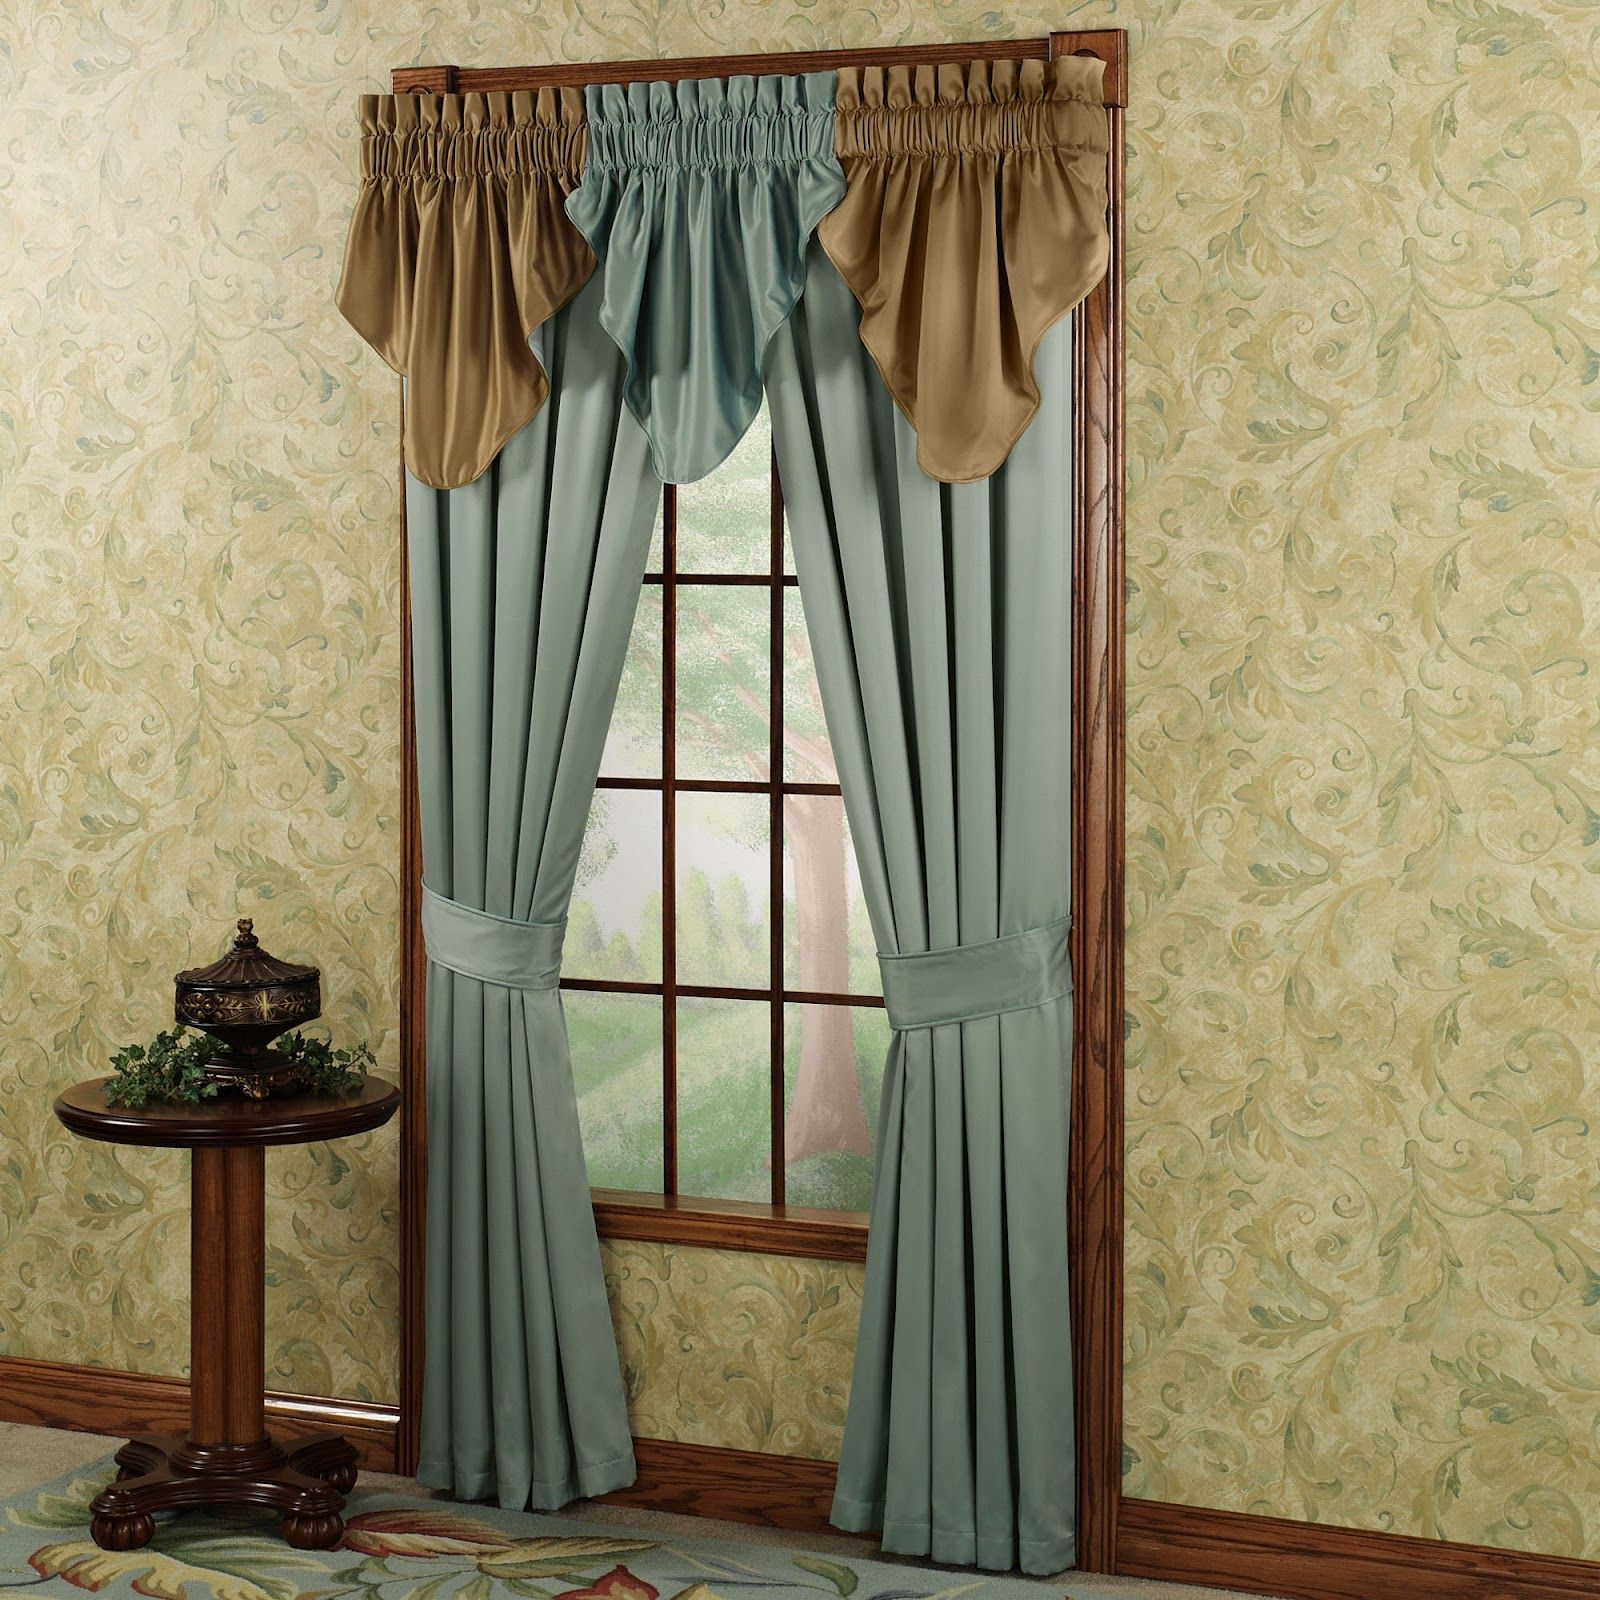 Classic curtain designs for living room - New Home Designs Latest Home Curtain Designs Ideas